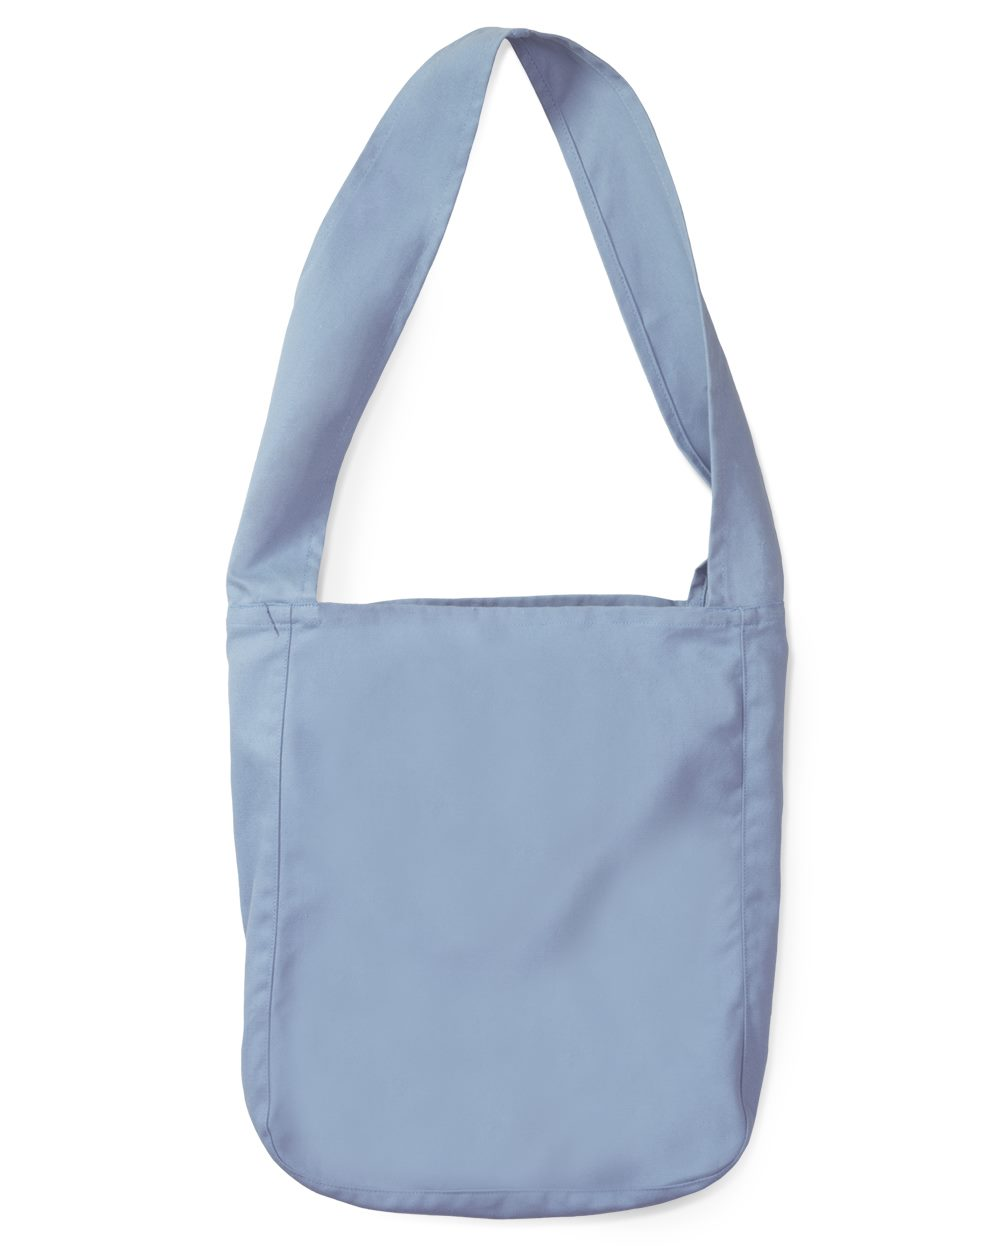 HYP HYB8 - 14.6L Canvas Sling Bag